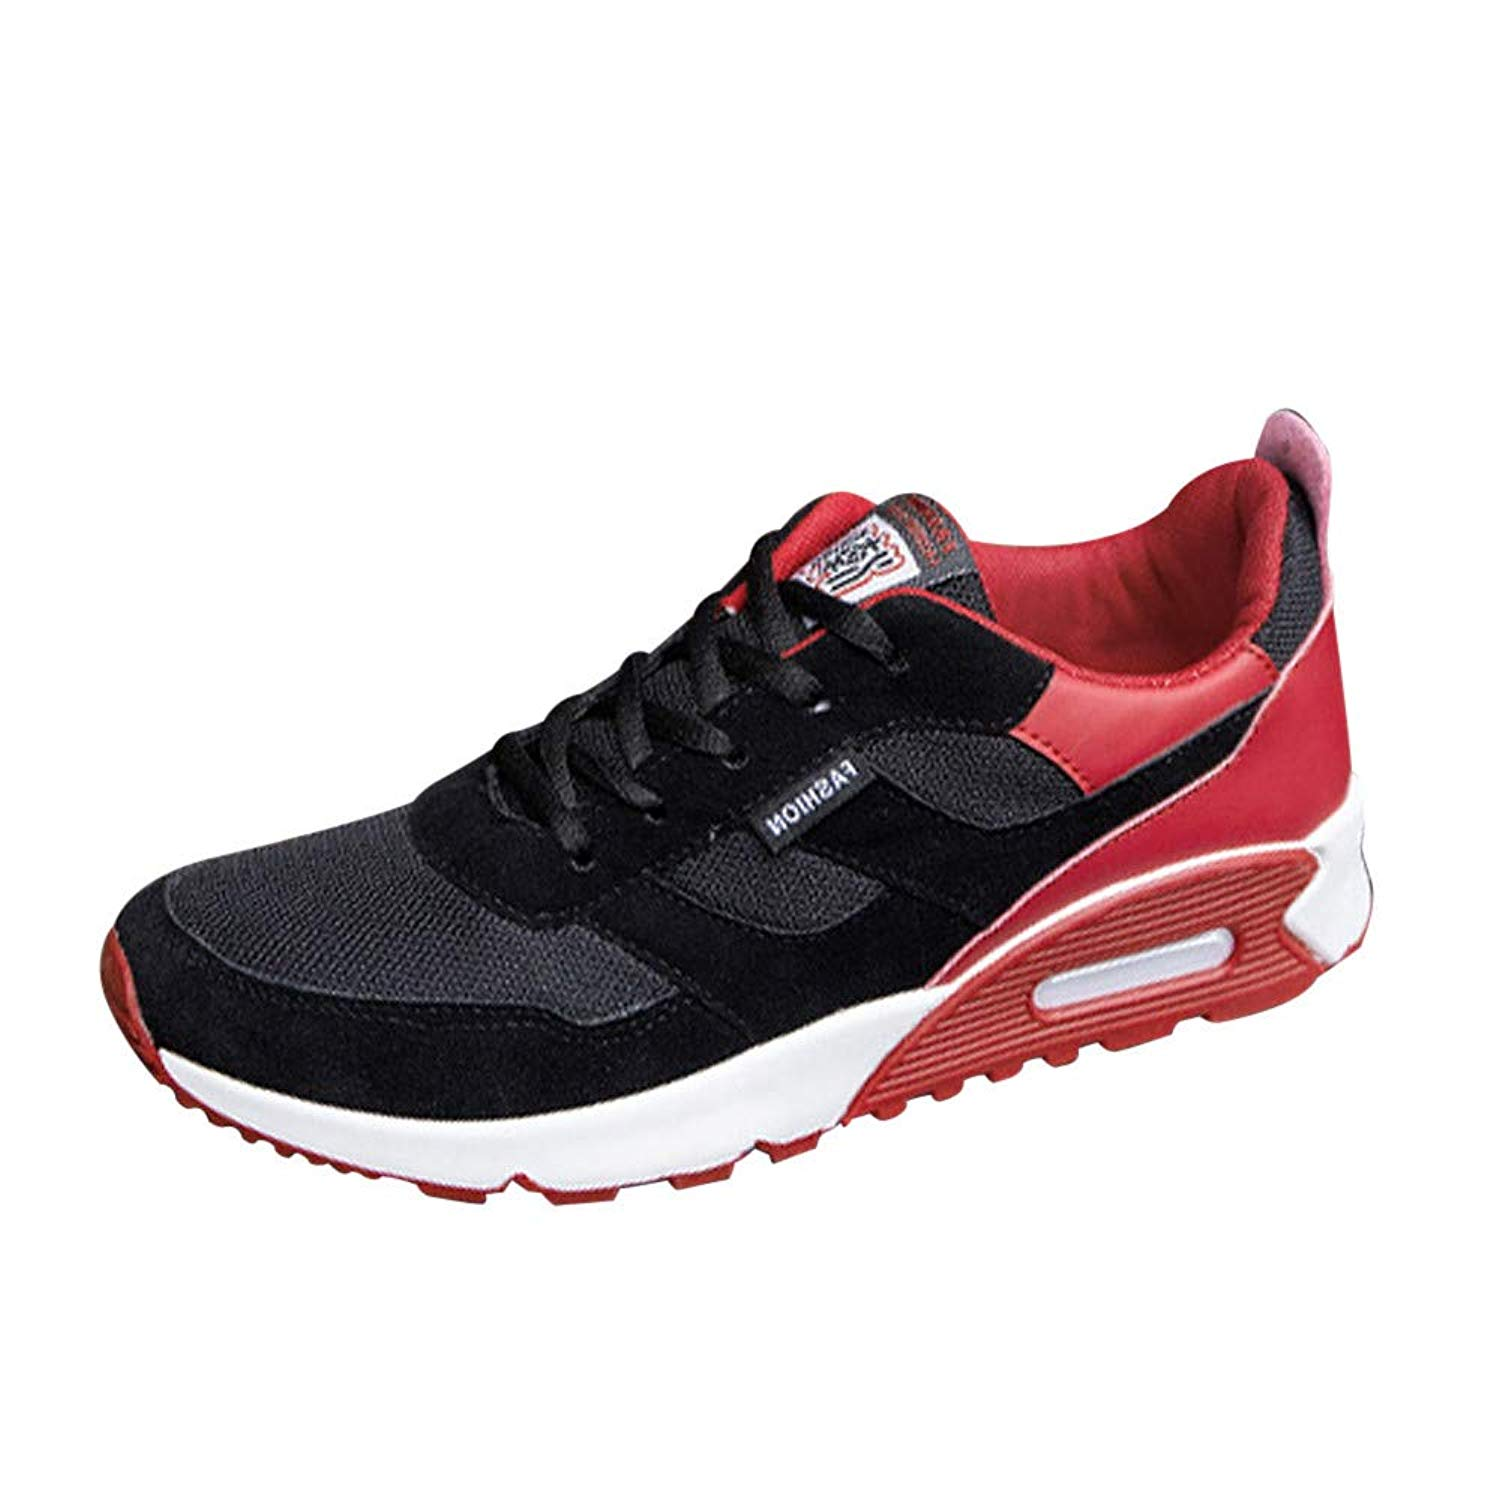 Sneakers for Men,Clearance Sale! Caopixx Men's Running Shoes Lightweight Non-Slip Gym Athletic Sneakers